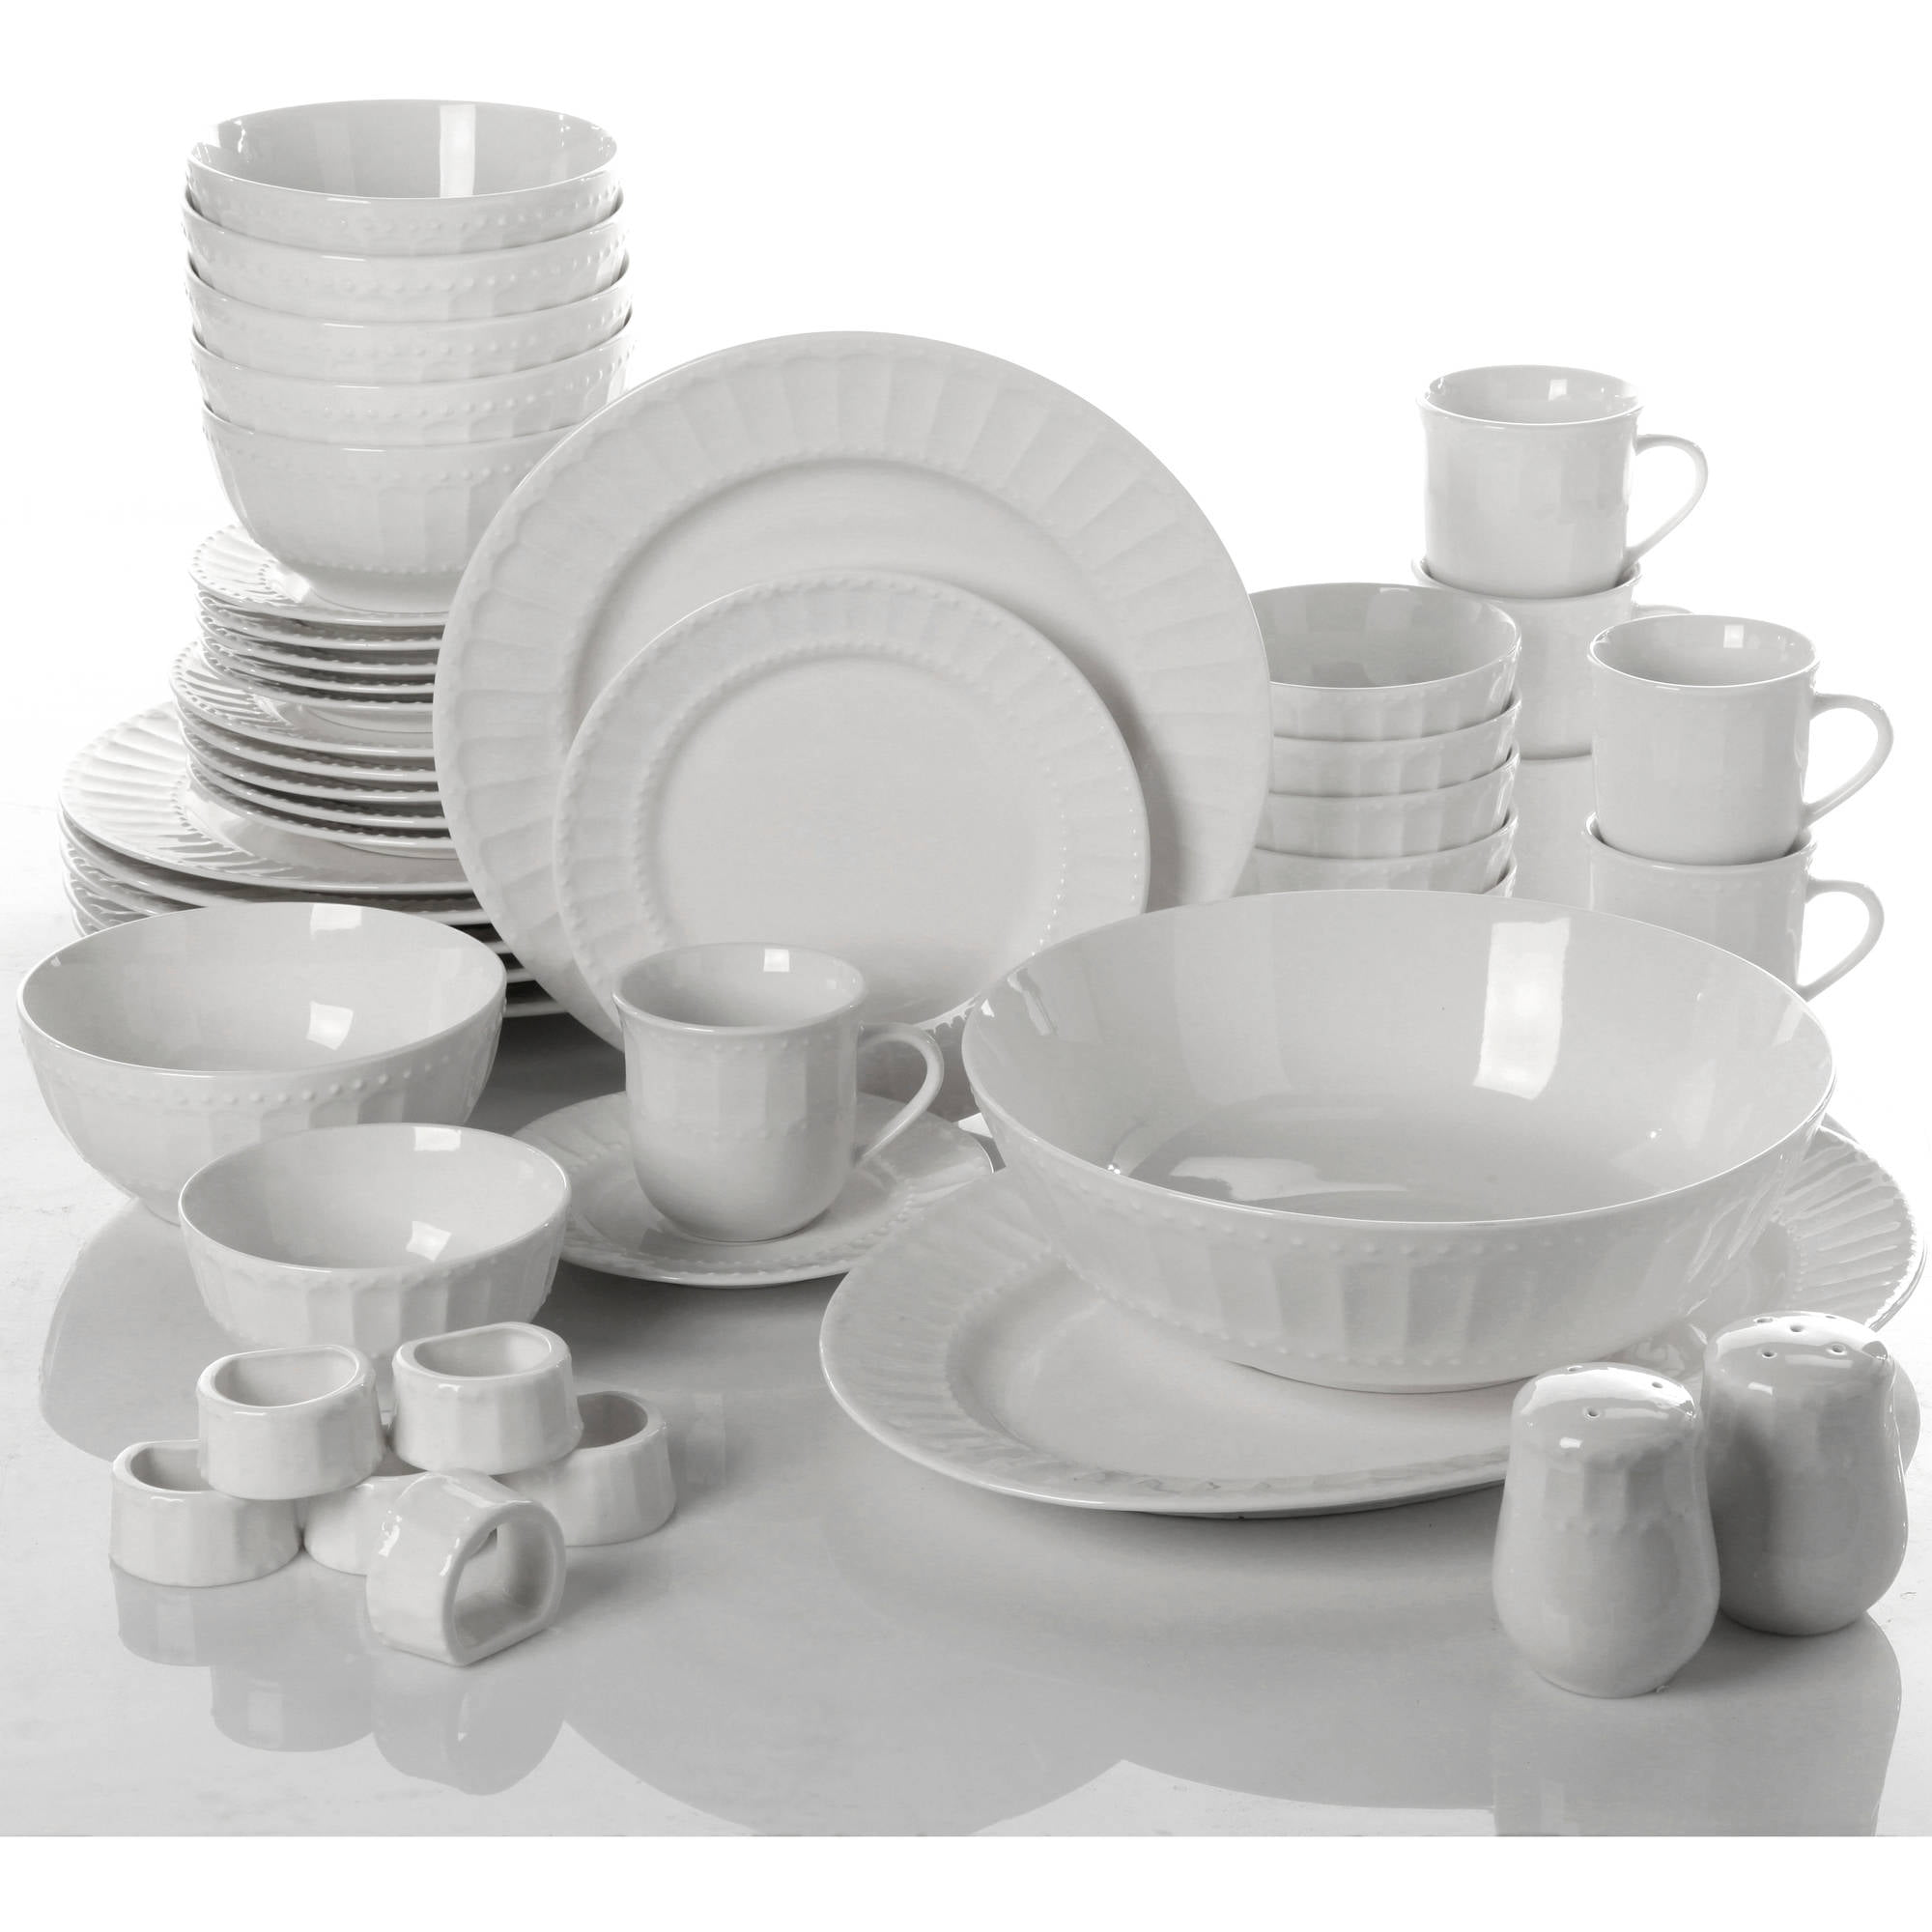 Etonnant Gibson Home Regalia 46 Piece Dinnerware And Serveware Set, Service For 6    Walmart.com